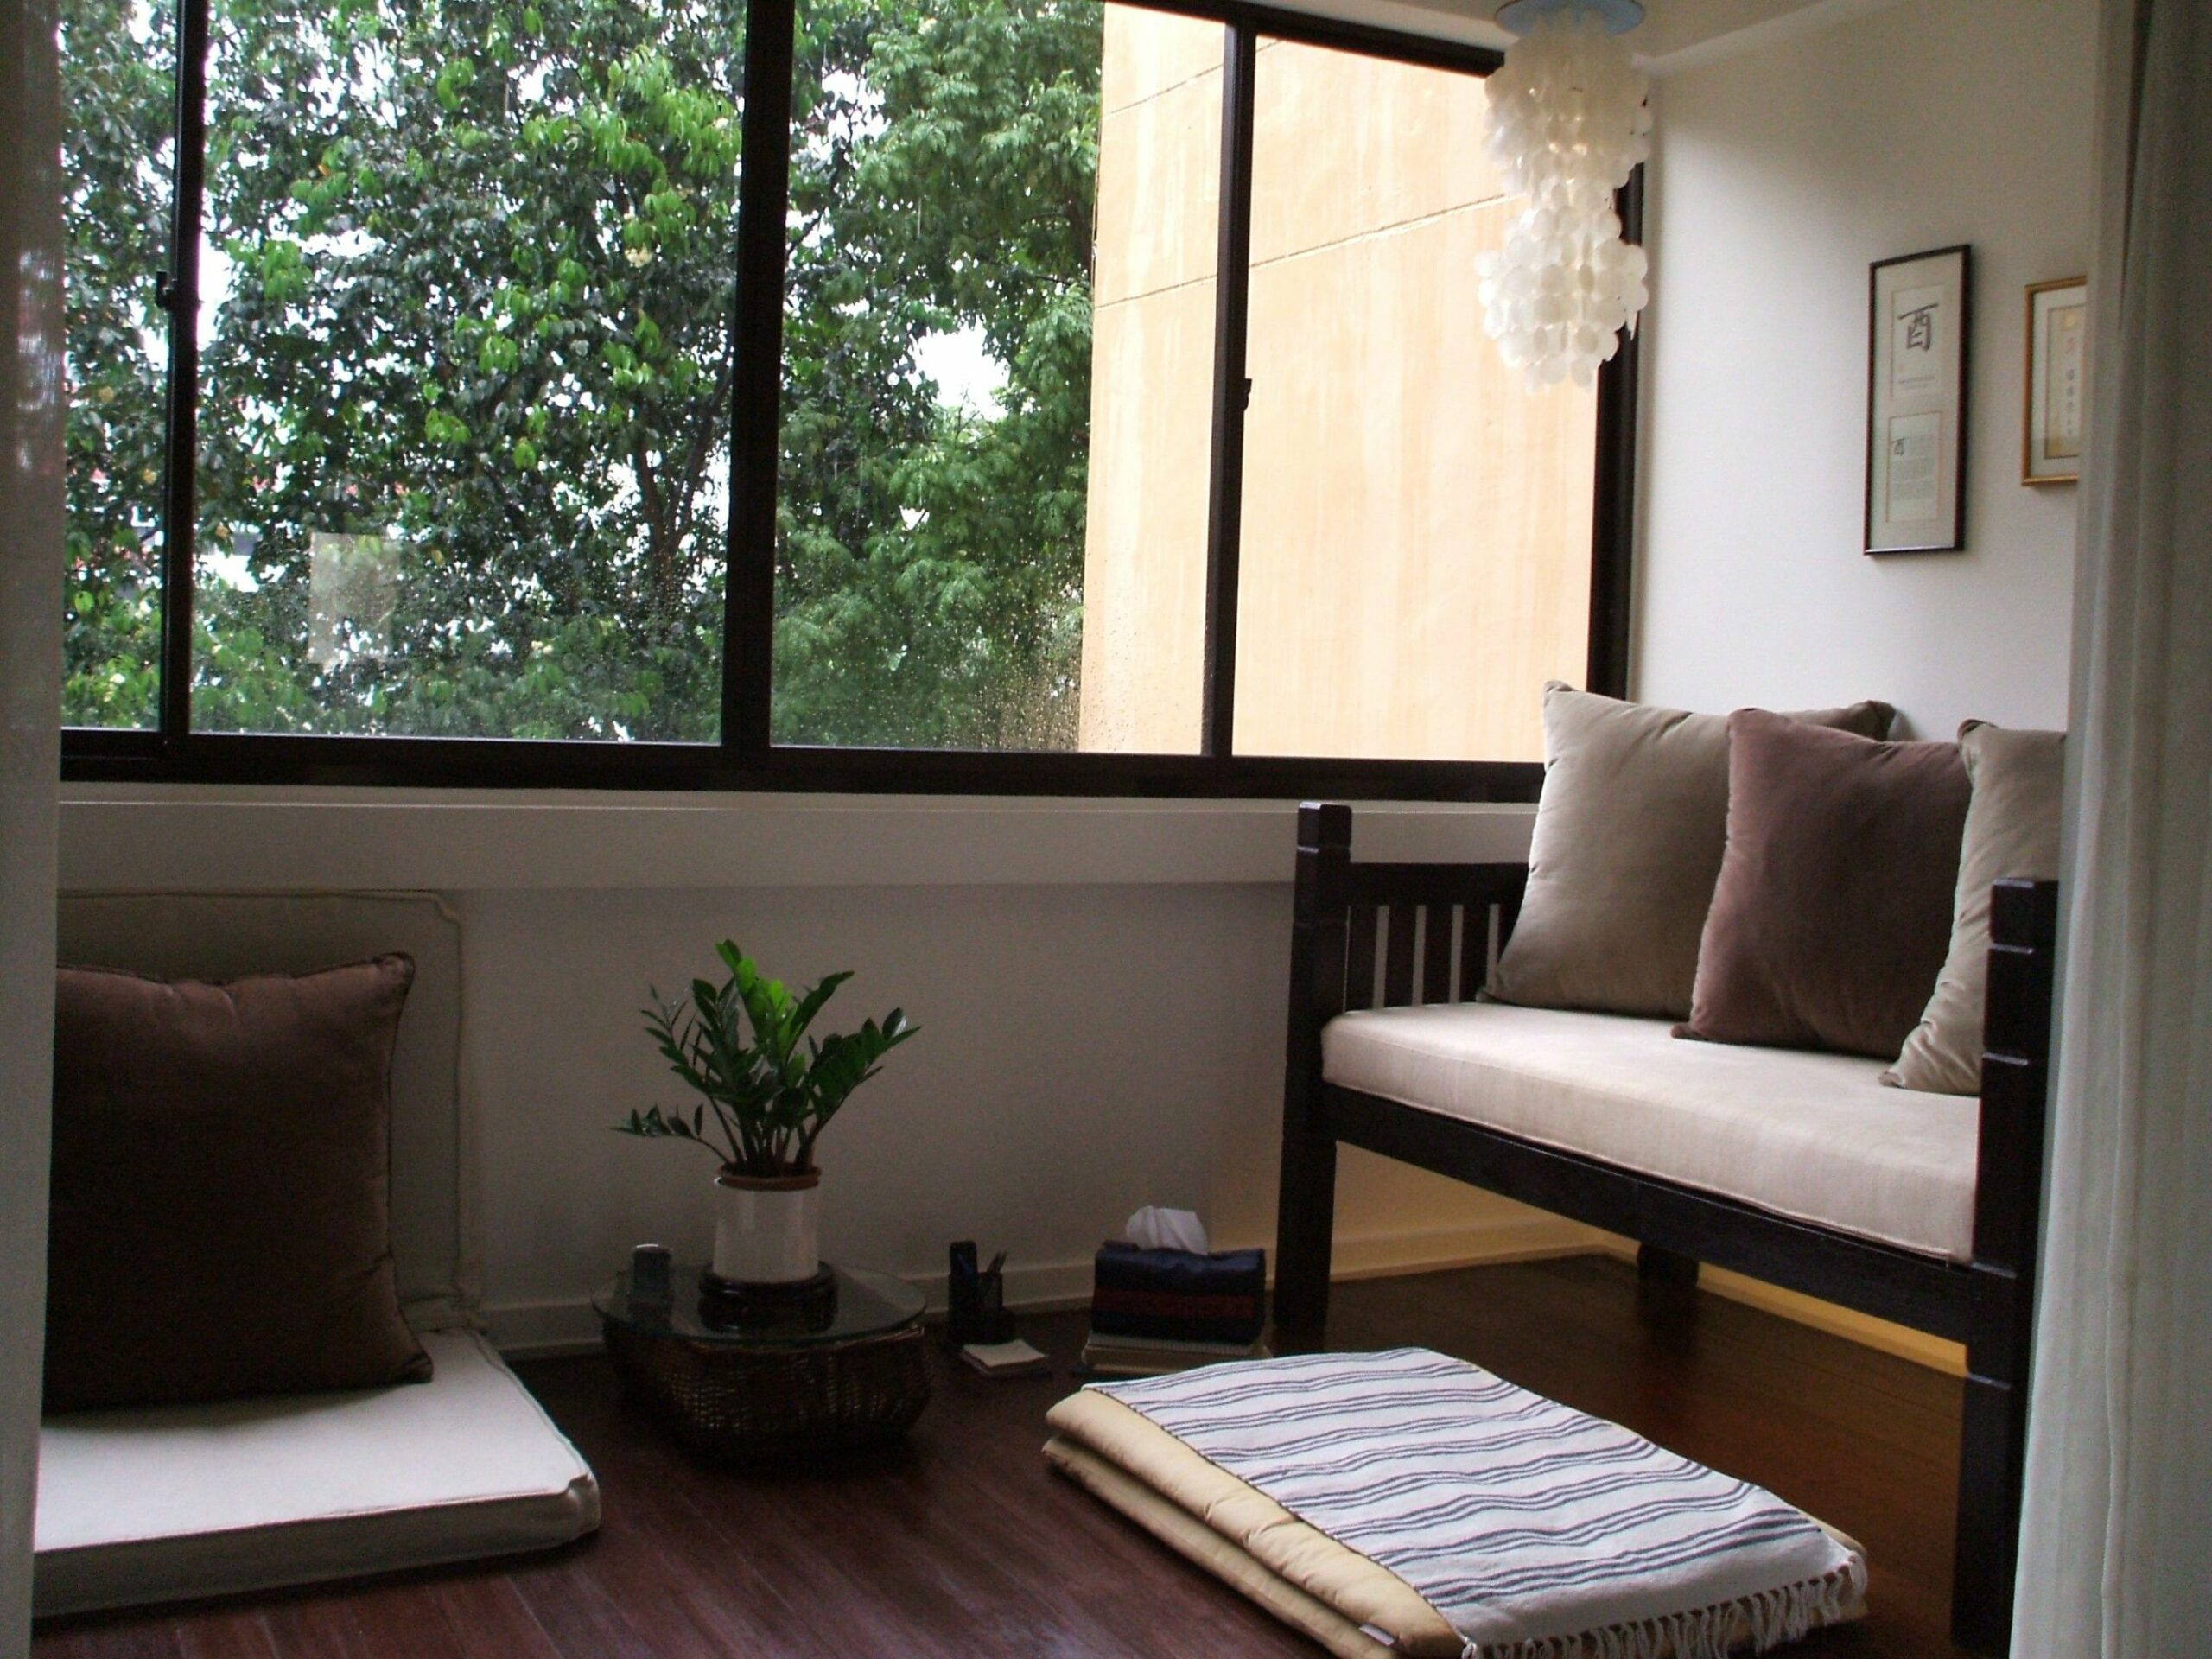 hdb balcony ideas - Google Search (With images) | Indian living ..